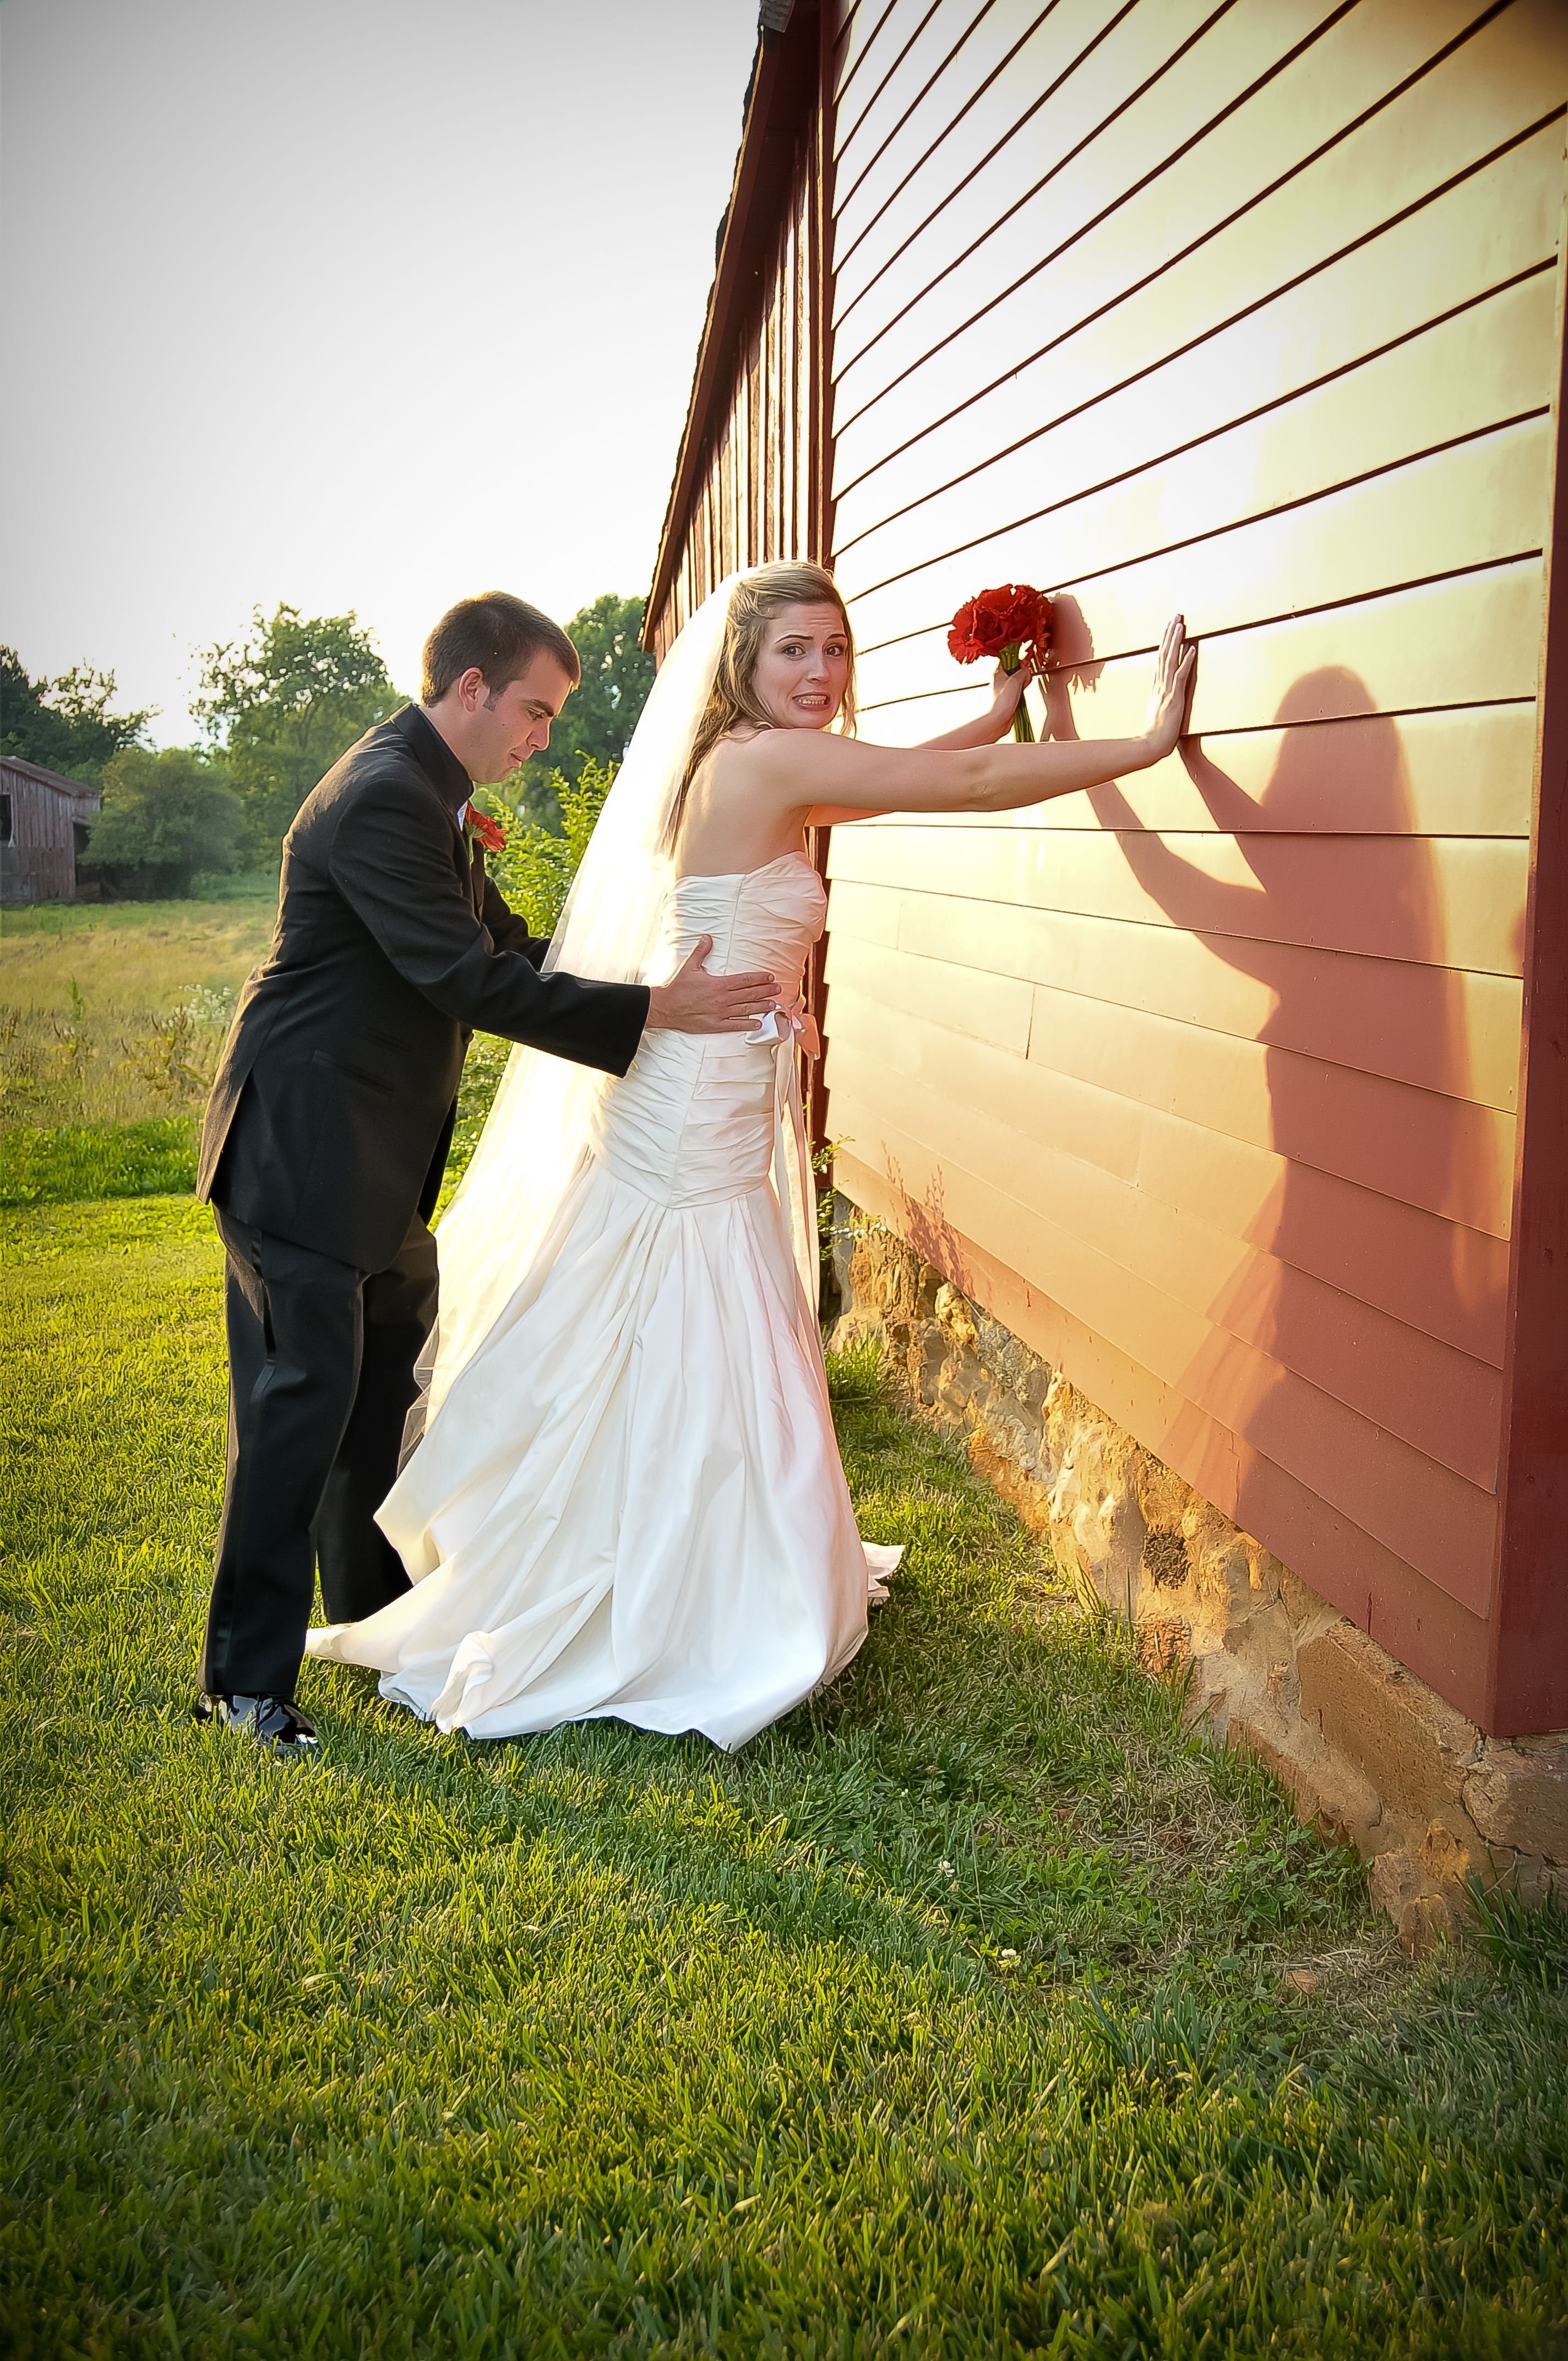 I Love This As A Wedding Picture For A Police Officer